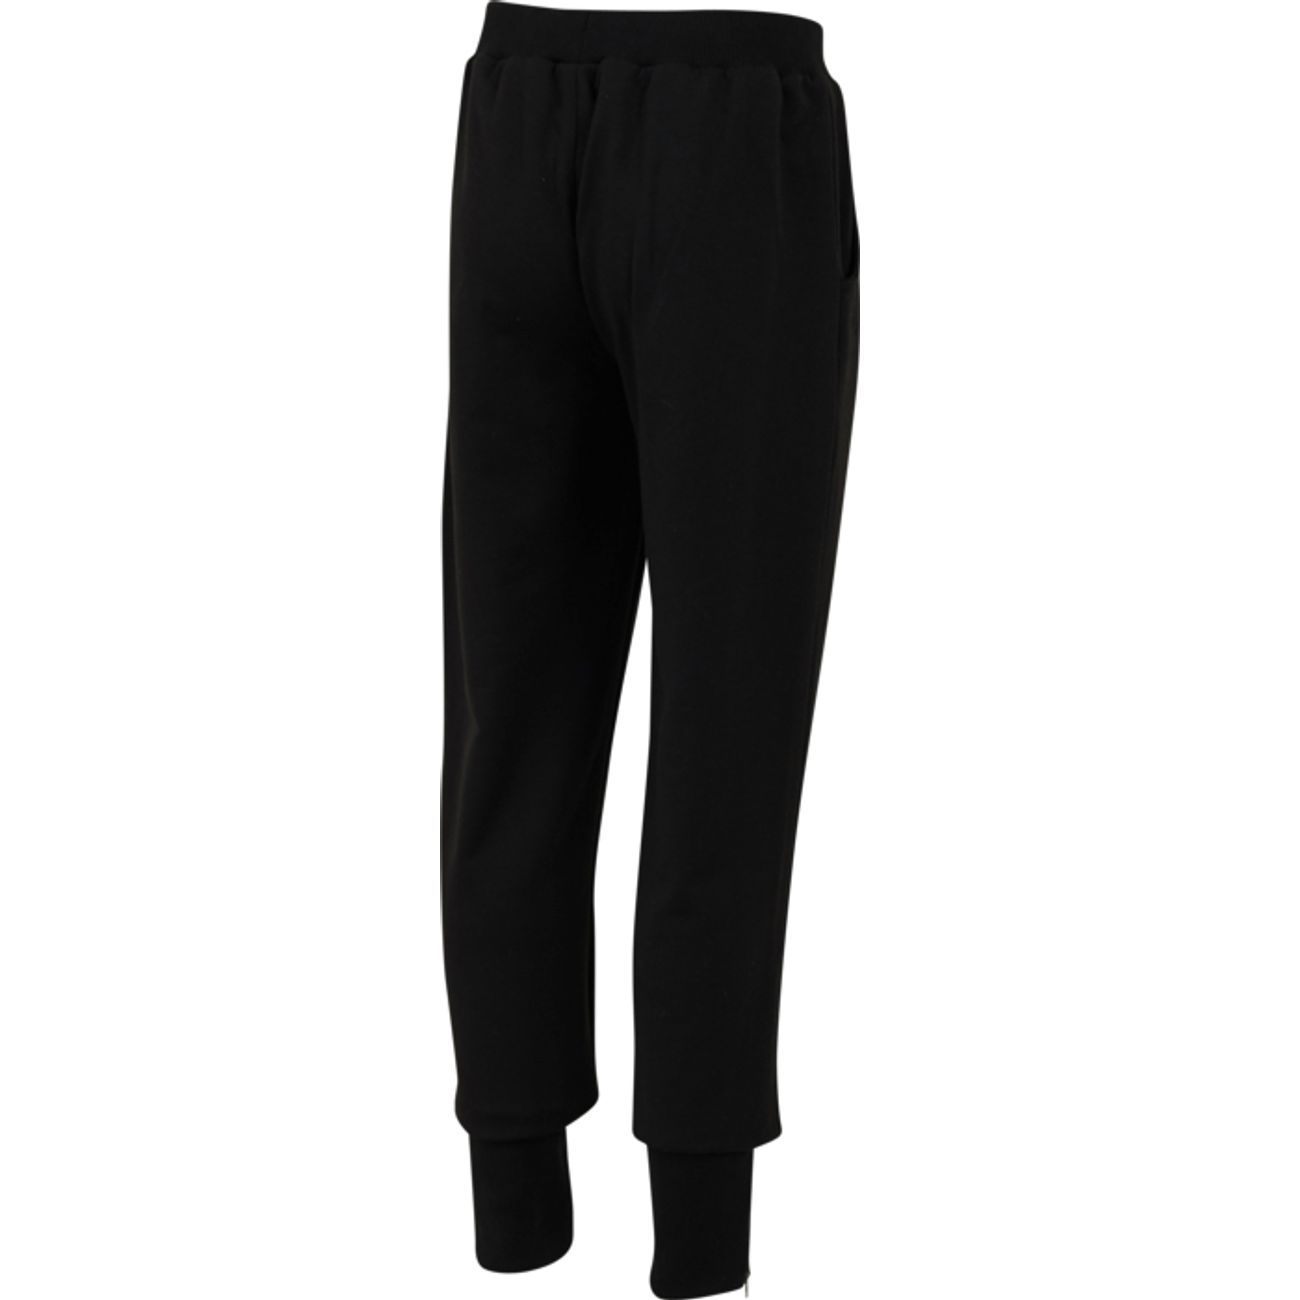 PANTALON Multisport garçon UP2GLIDE UNI UP